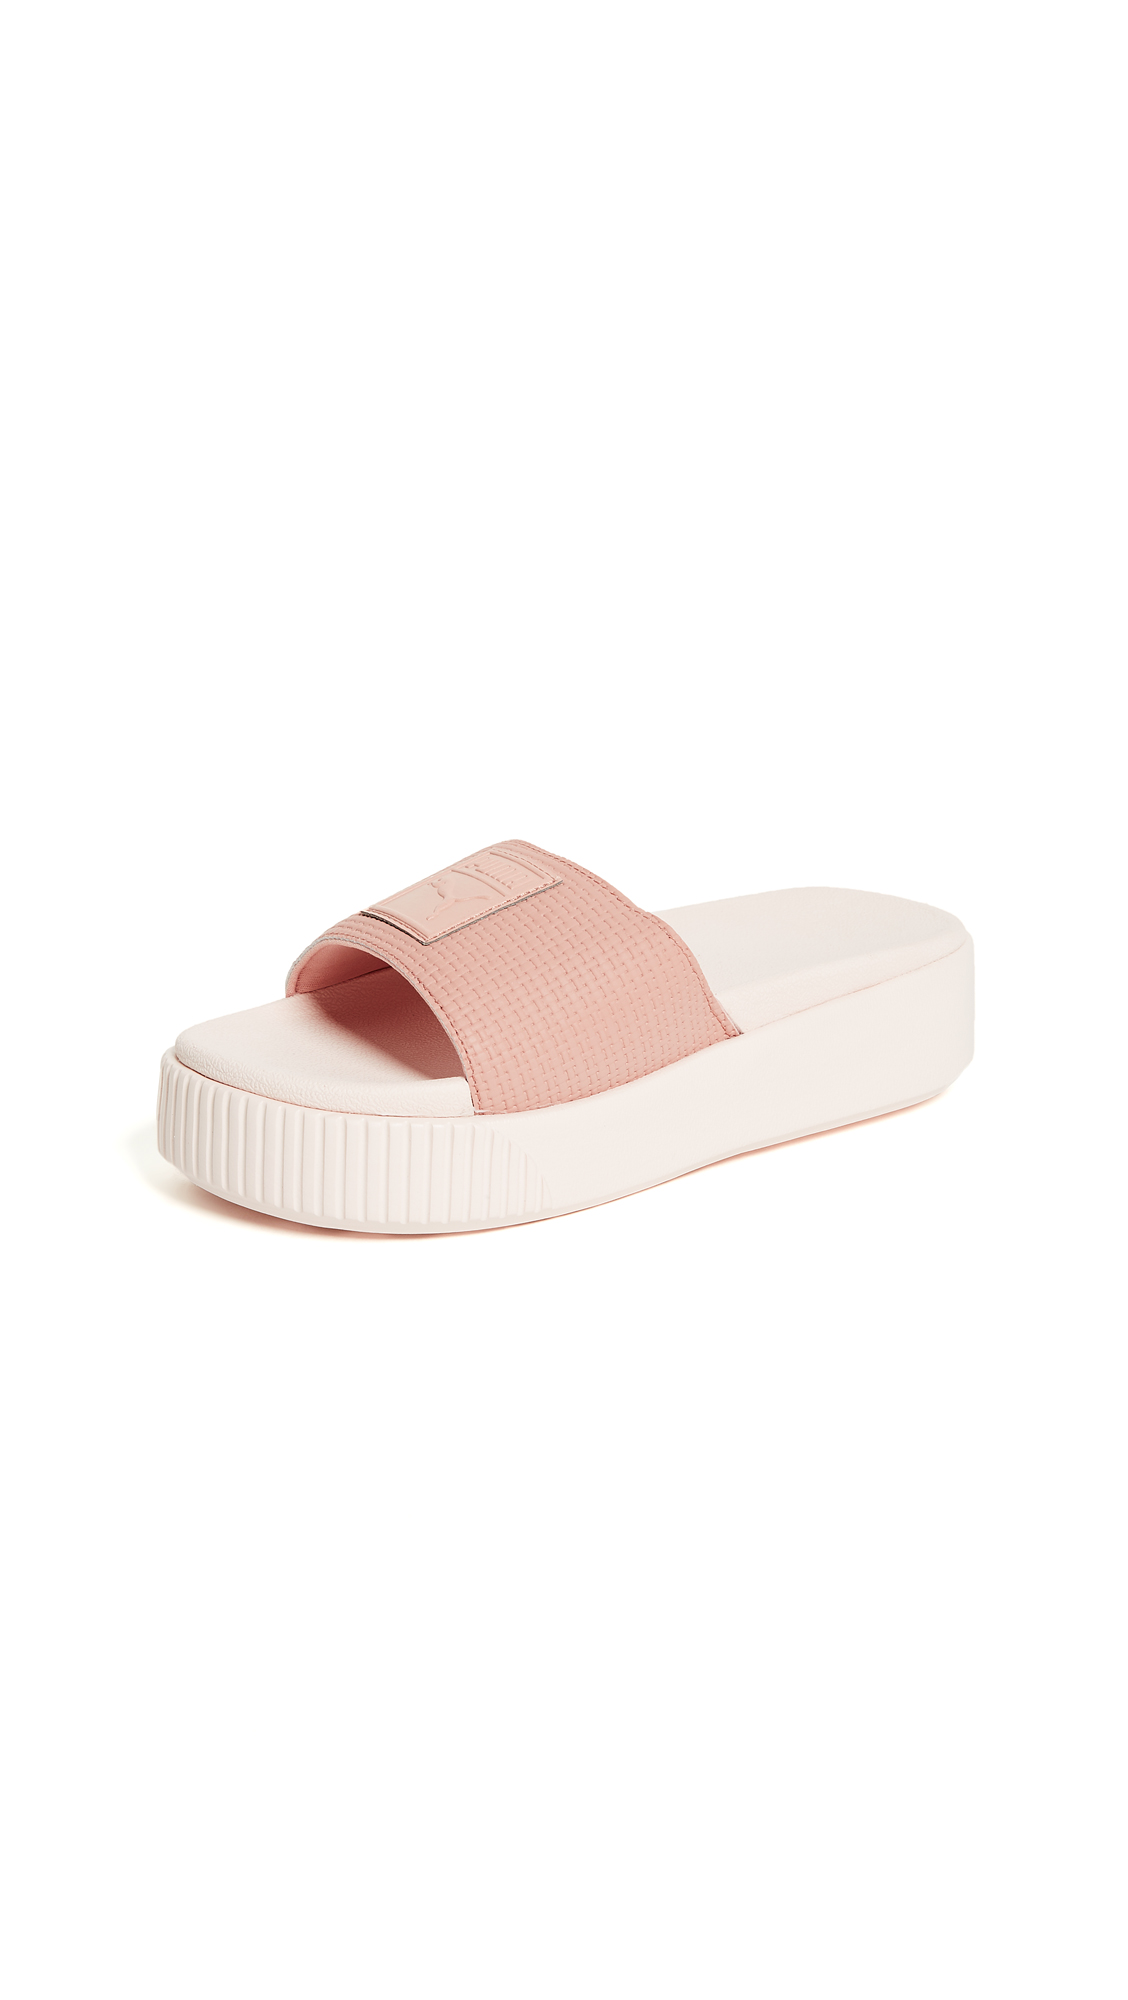 Puma Women's Platform Pool Slide Sandals